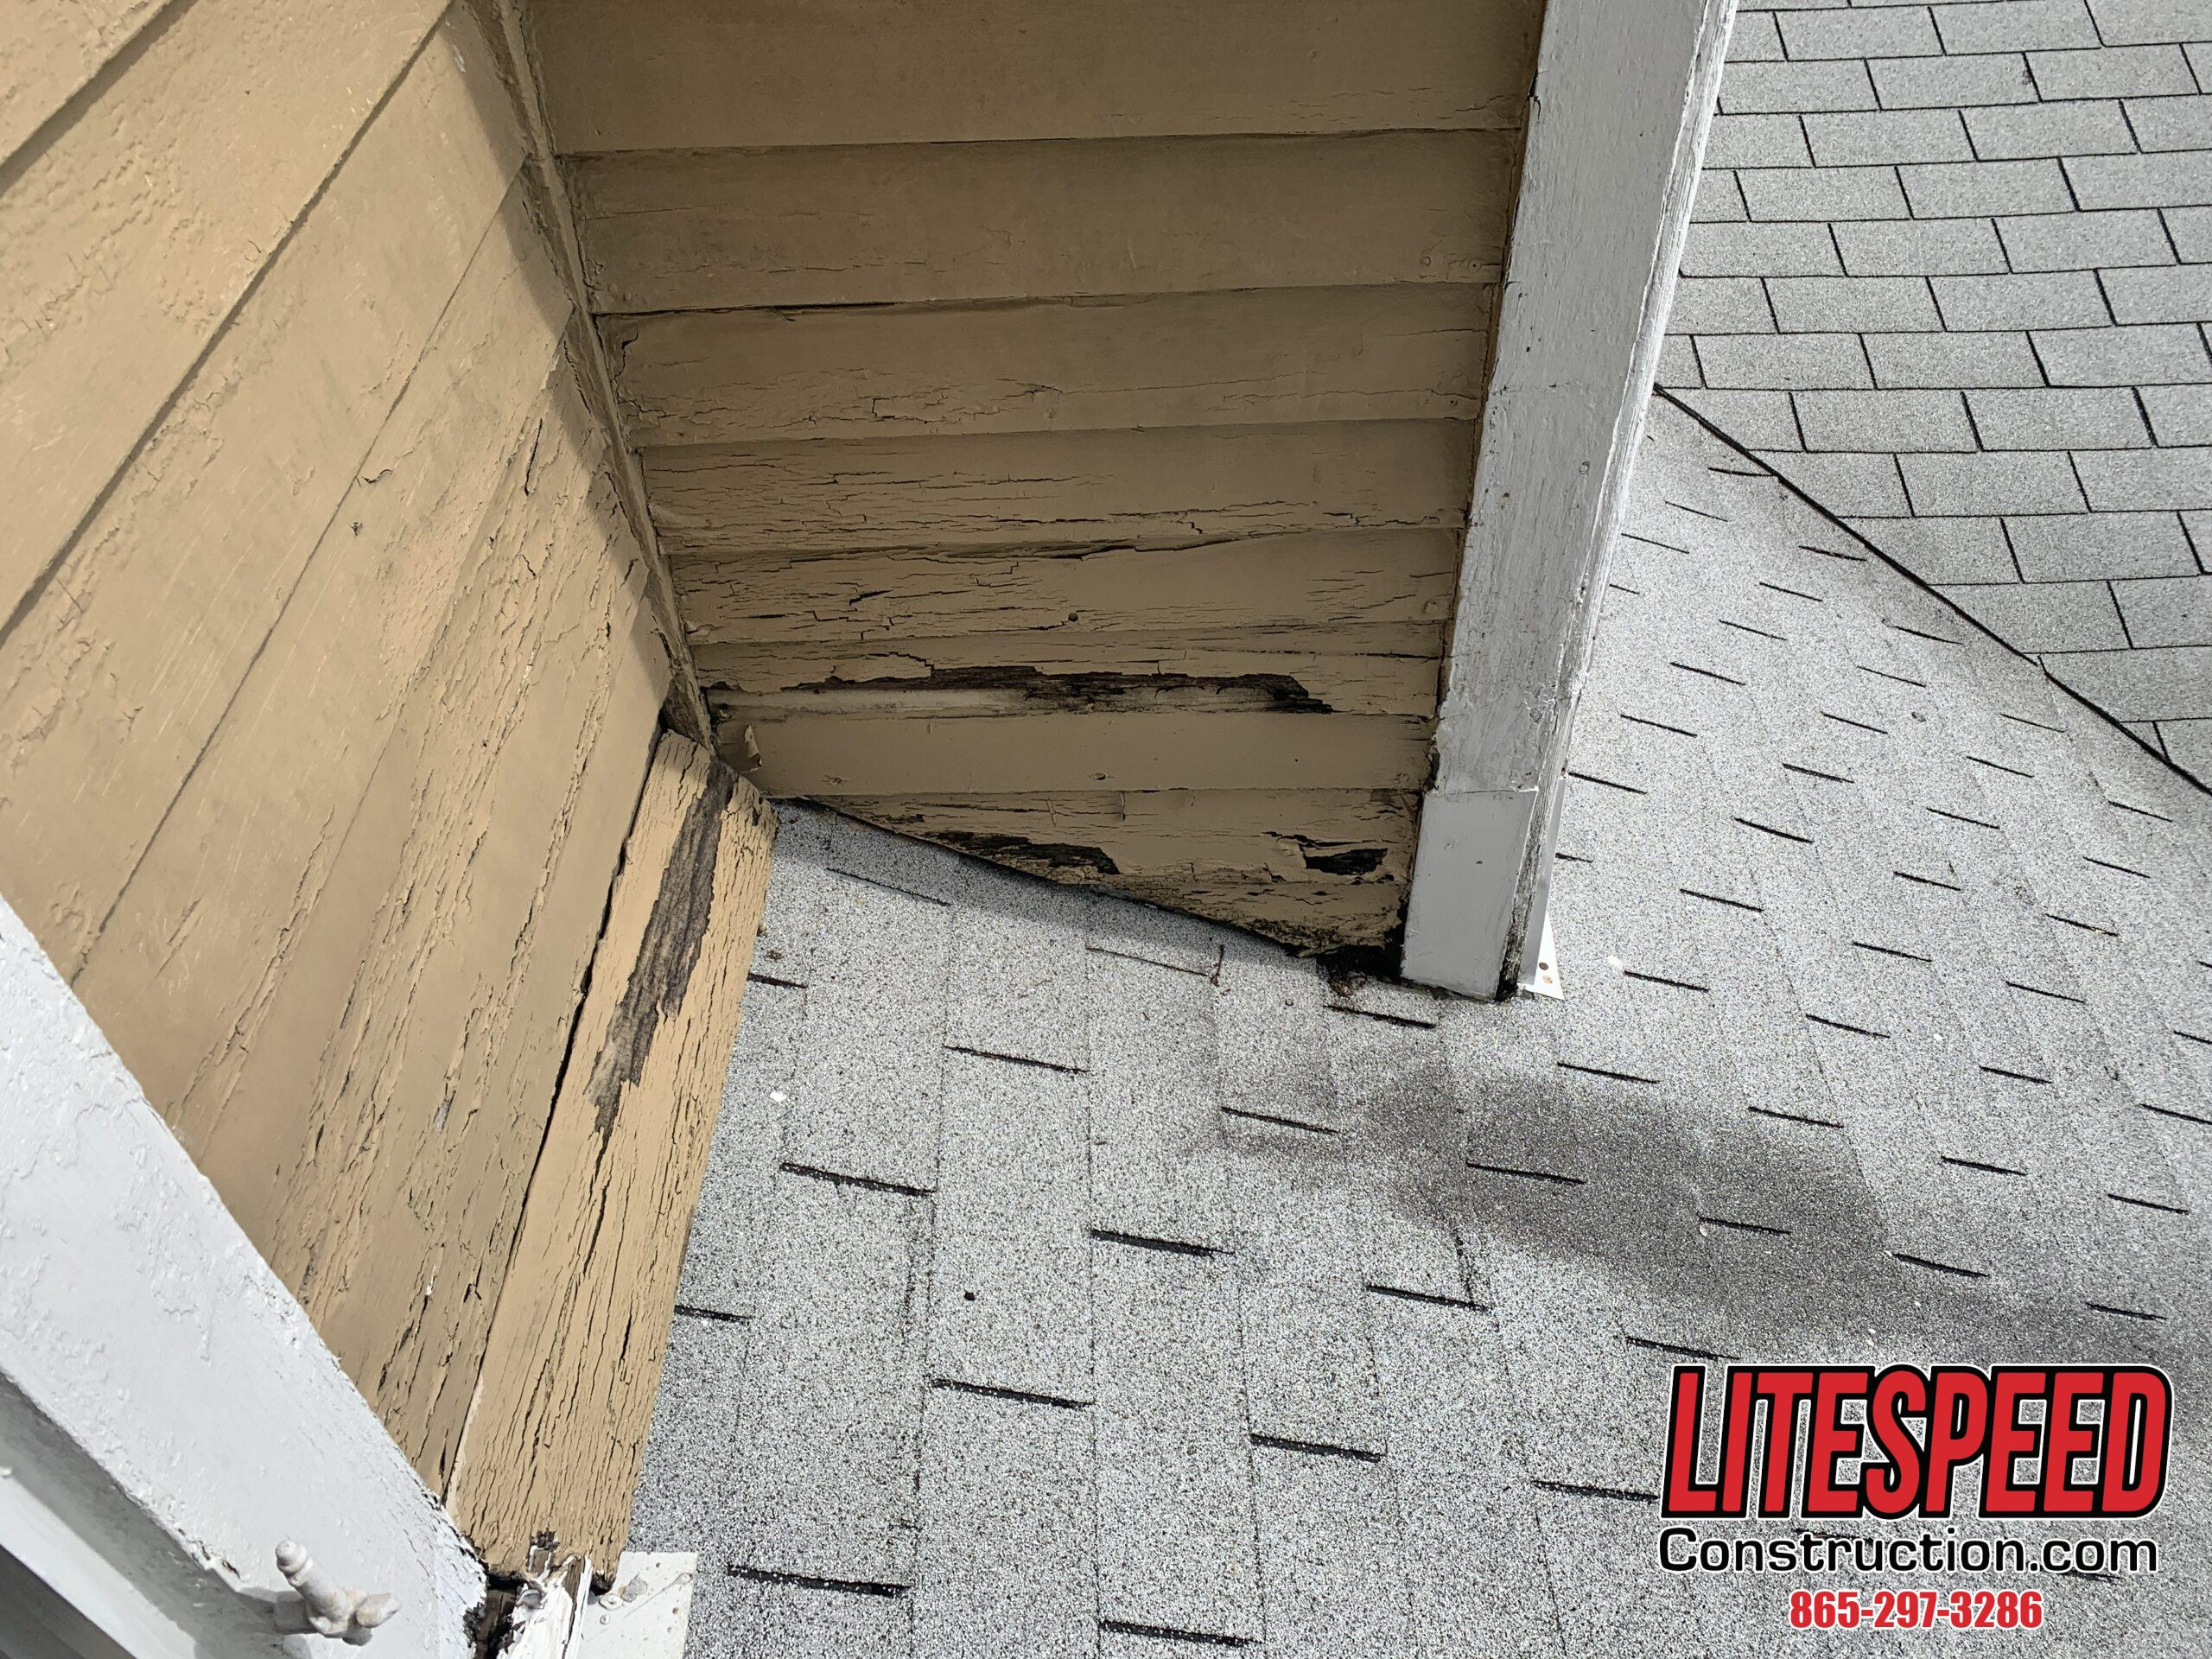 Bad siding where fascia meets the wall.  This will need new step flashing and siding repair